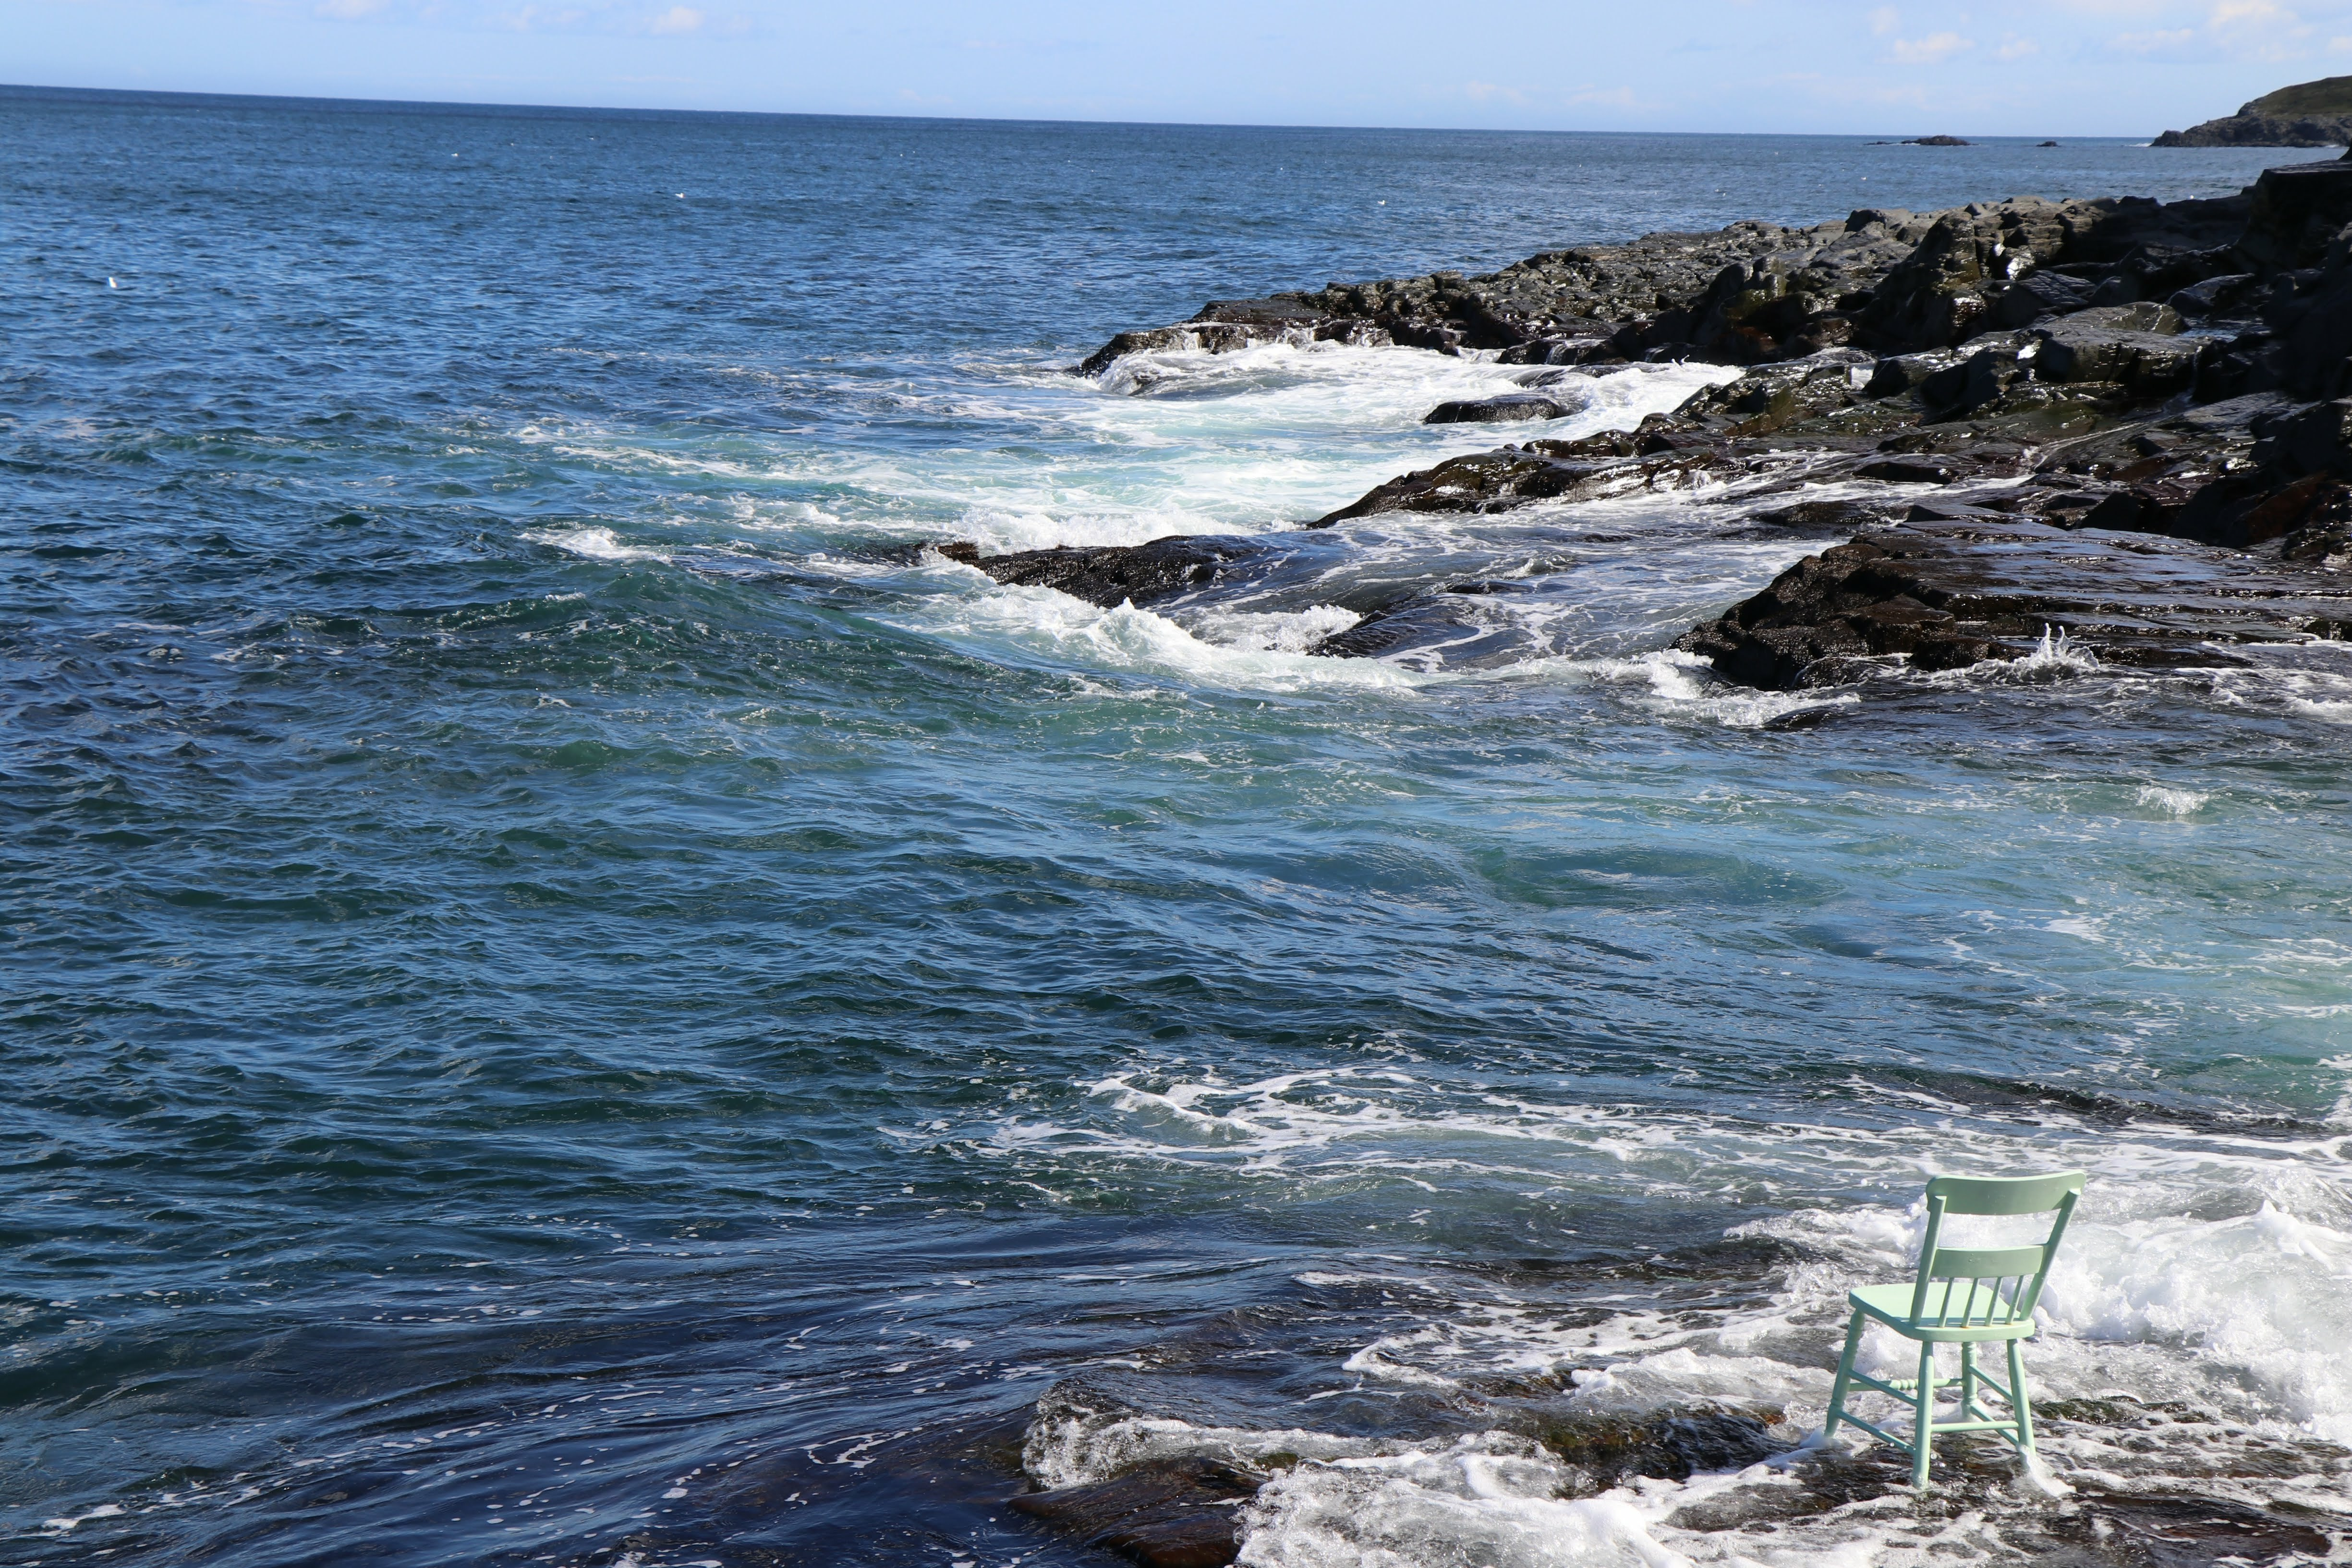 A chair is fastened to the rocks being pummeled by the unforgiving Atlantic waves